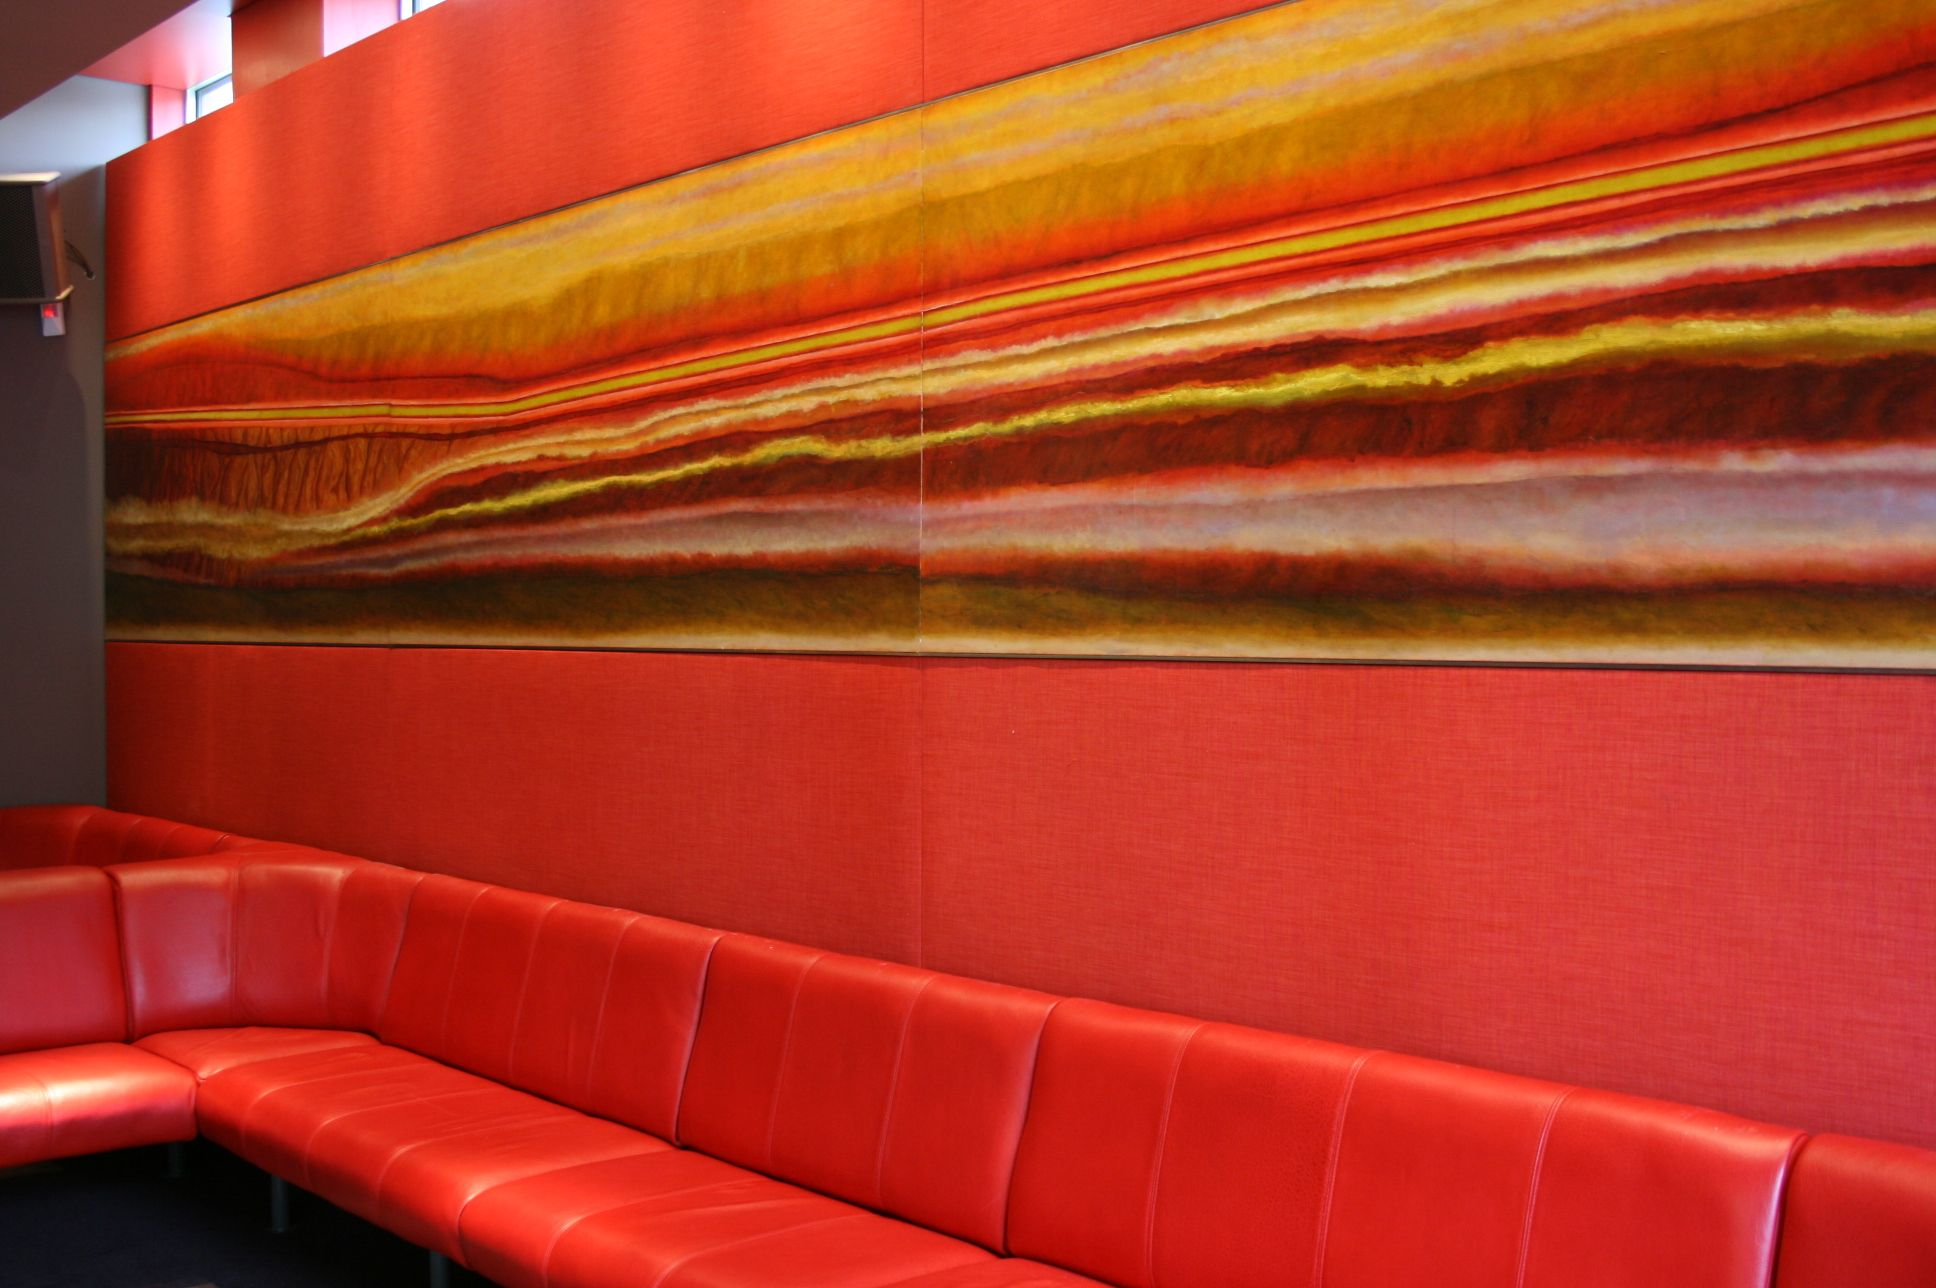 Banquette Seating - Pubs, Clubs, Restaurants, Hotels